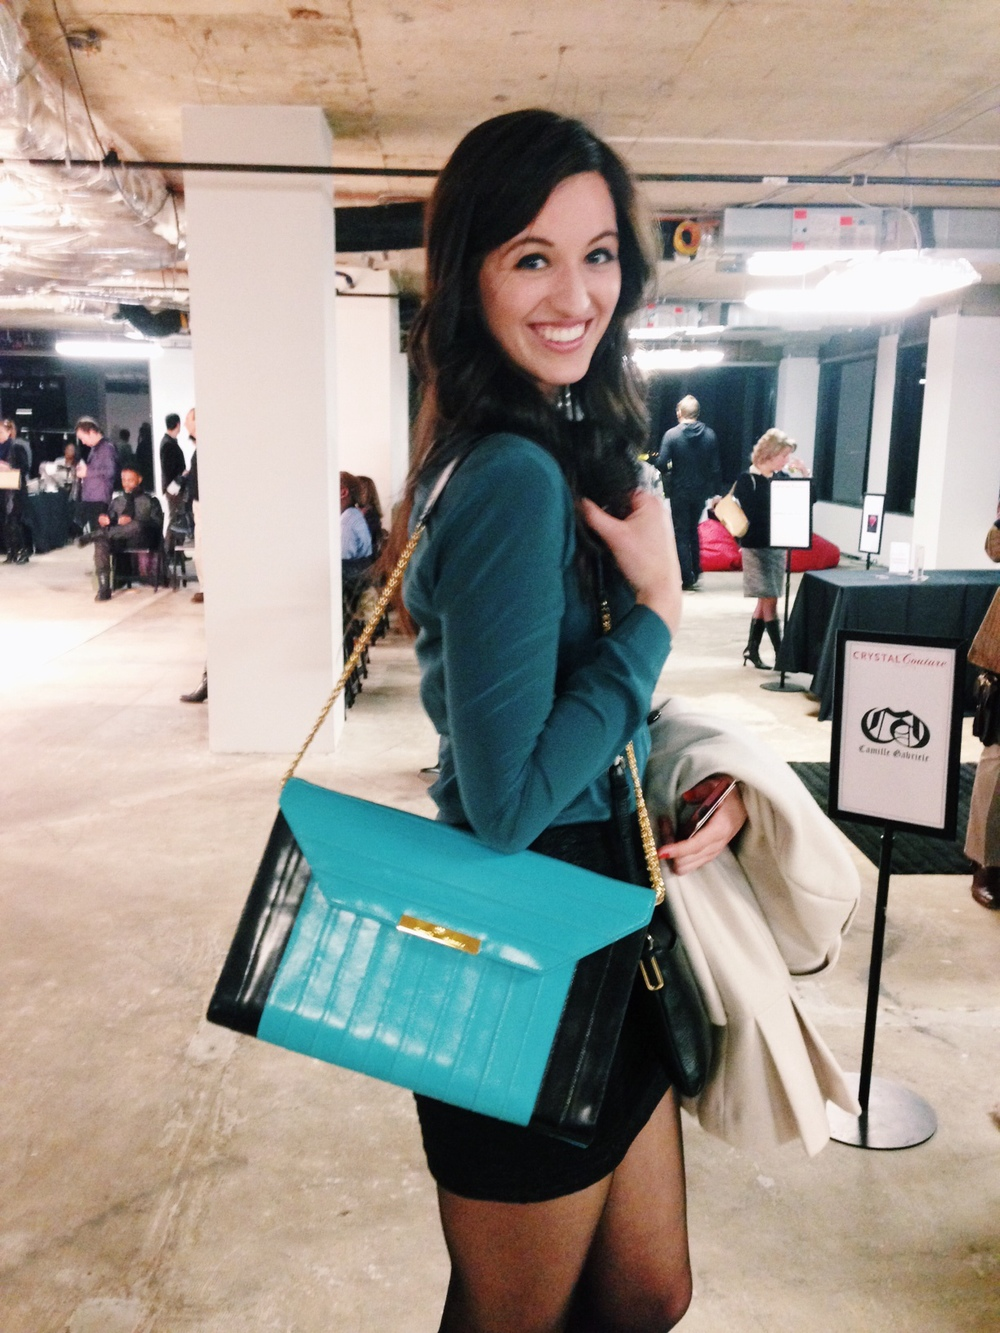 Here, Stephanie models a Camille Gabriele purse.